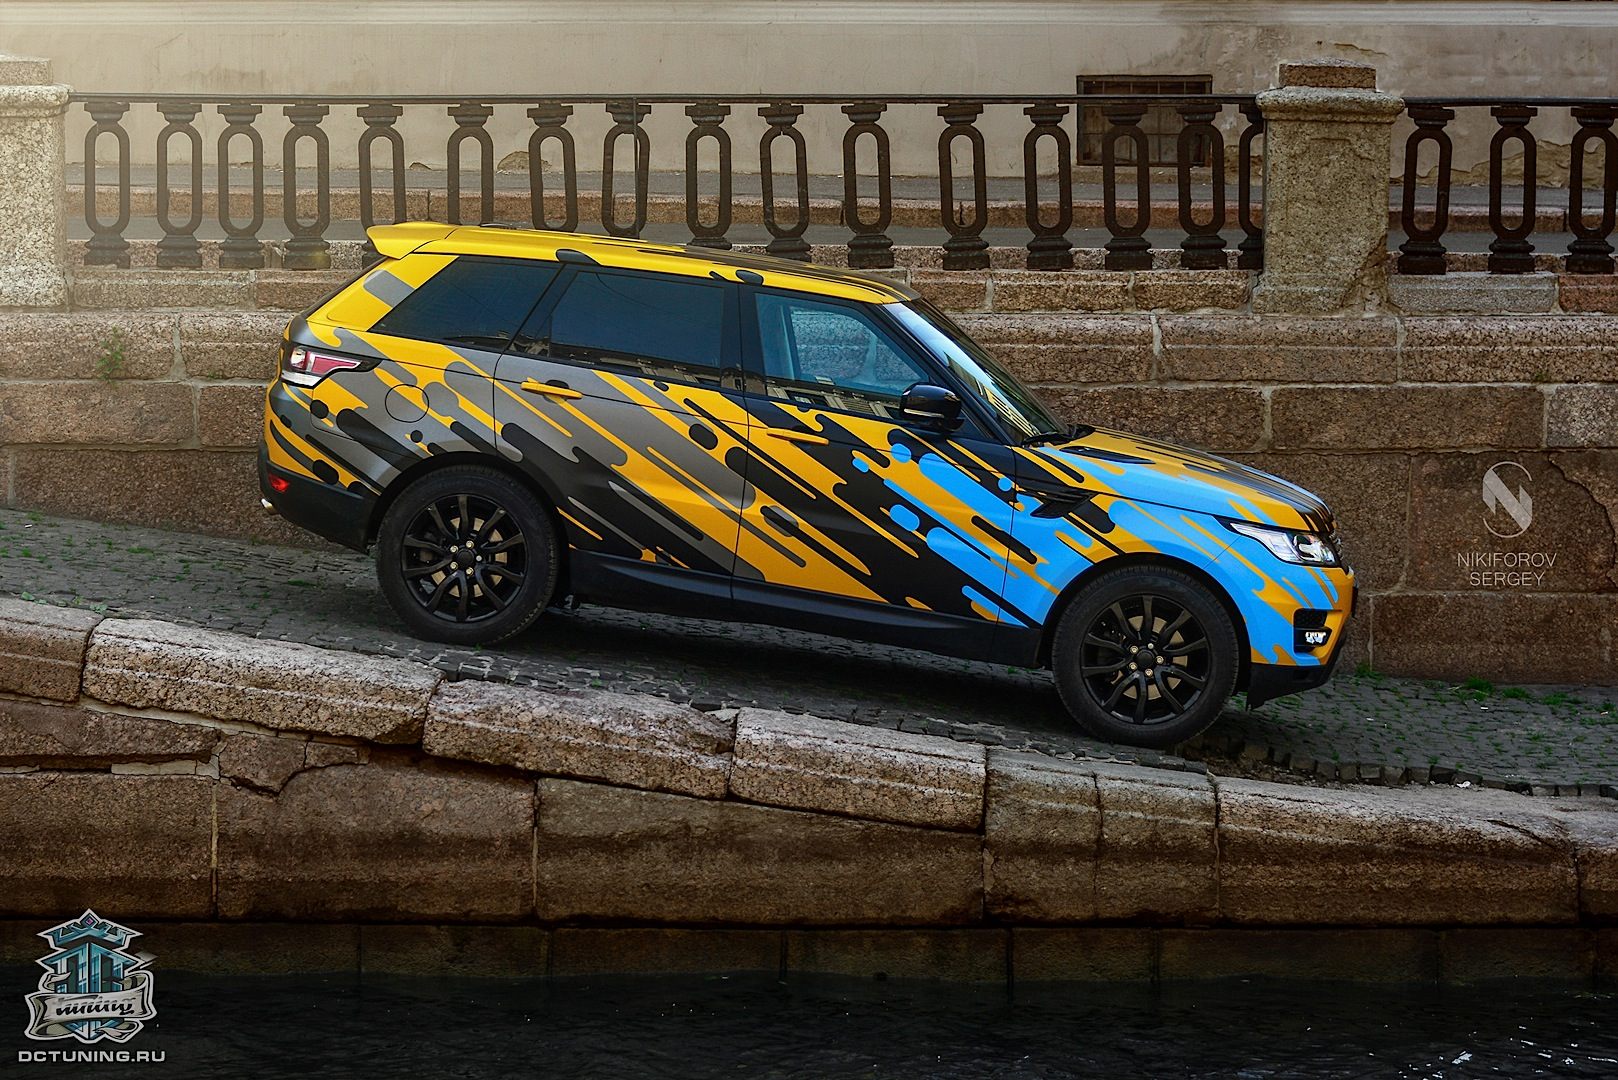 New Range Rover Sport Gets Crazy Heat Wave Wrap From Dc Tuning